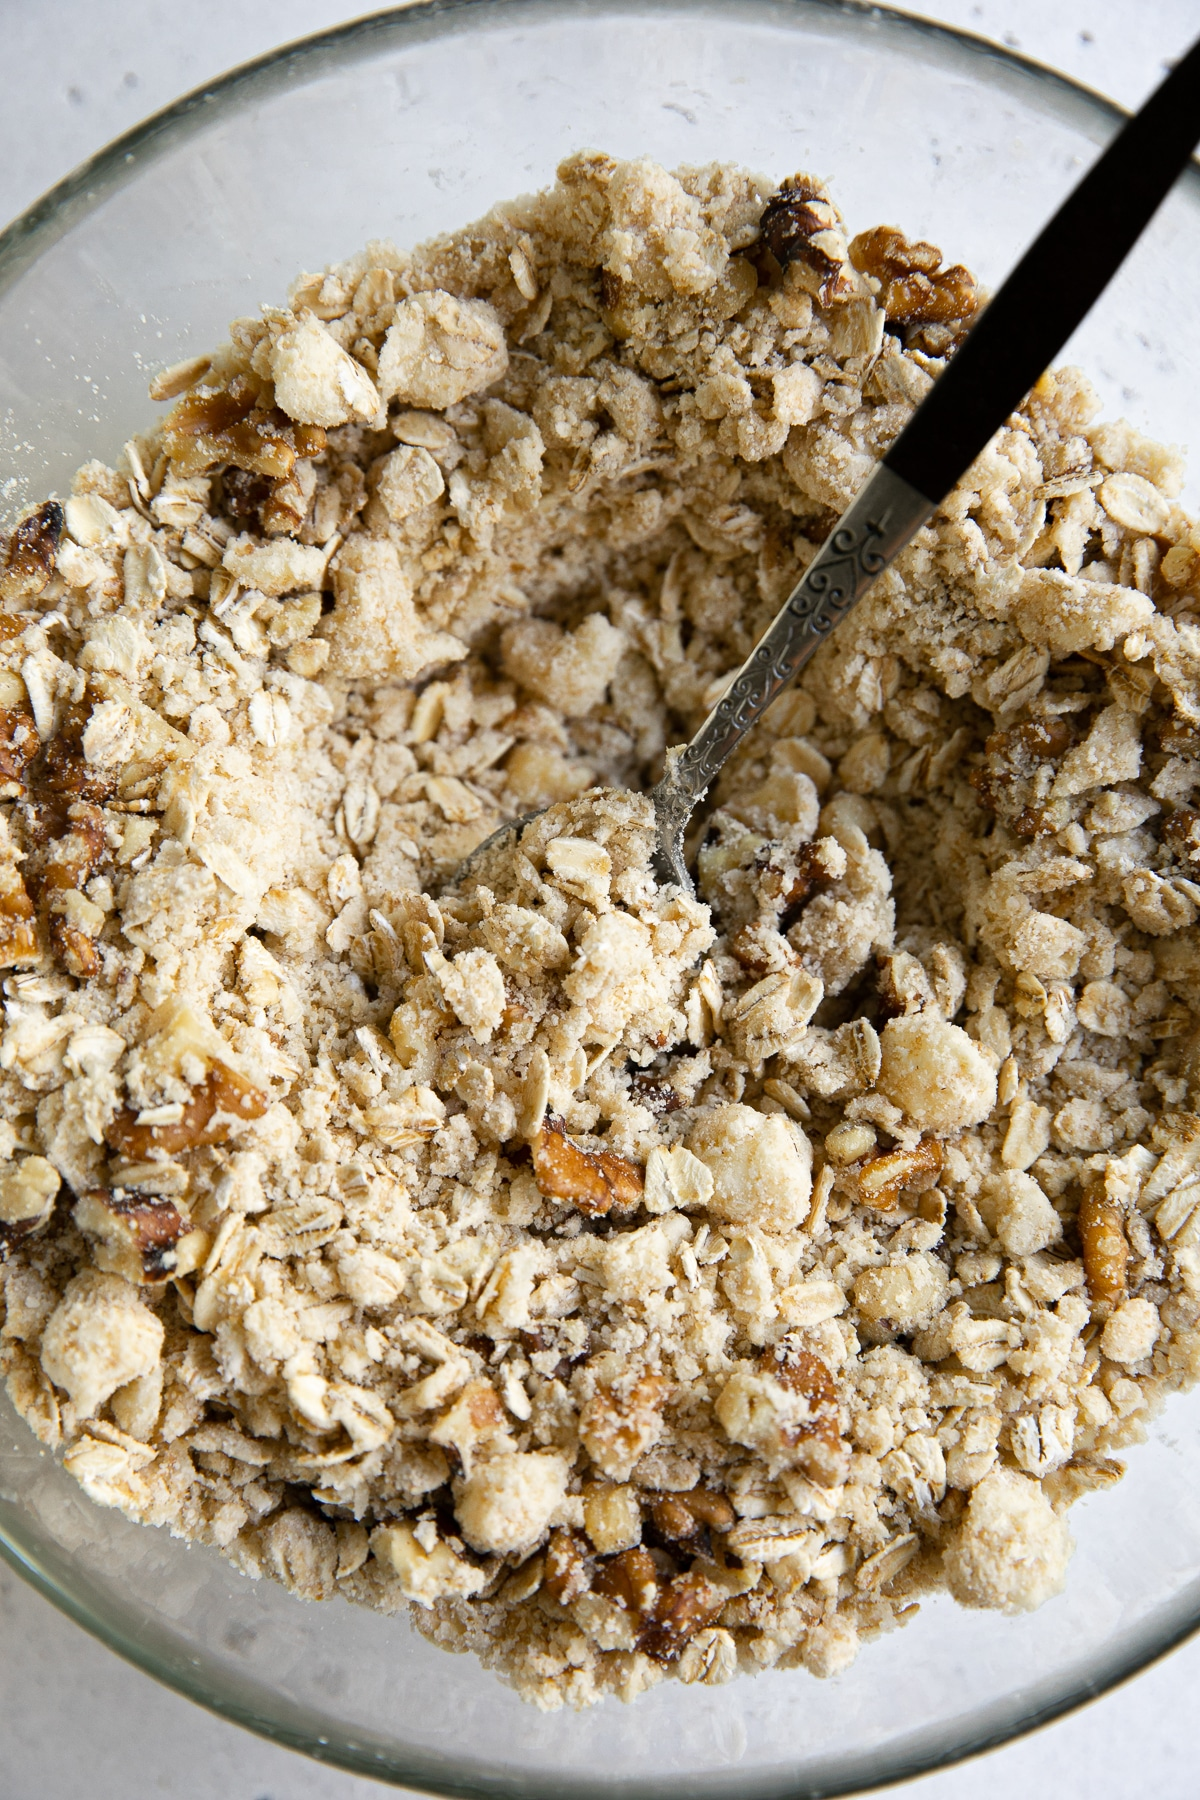 Flour, brown sugar, rolled oats, cubed butter, and spices mixed together with walnuts in a glass baking dish.